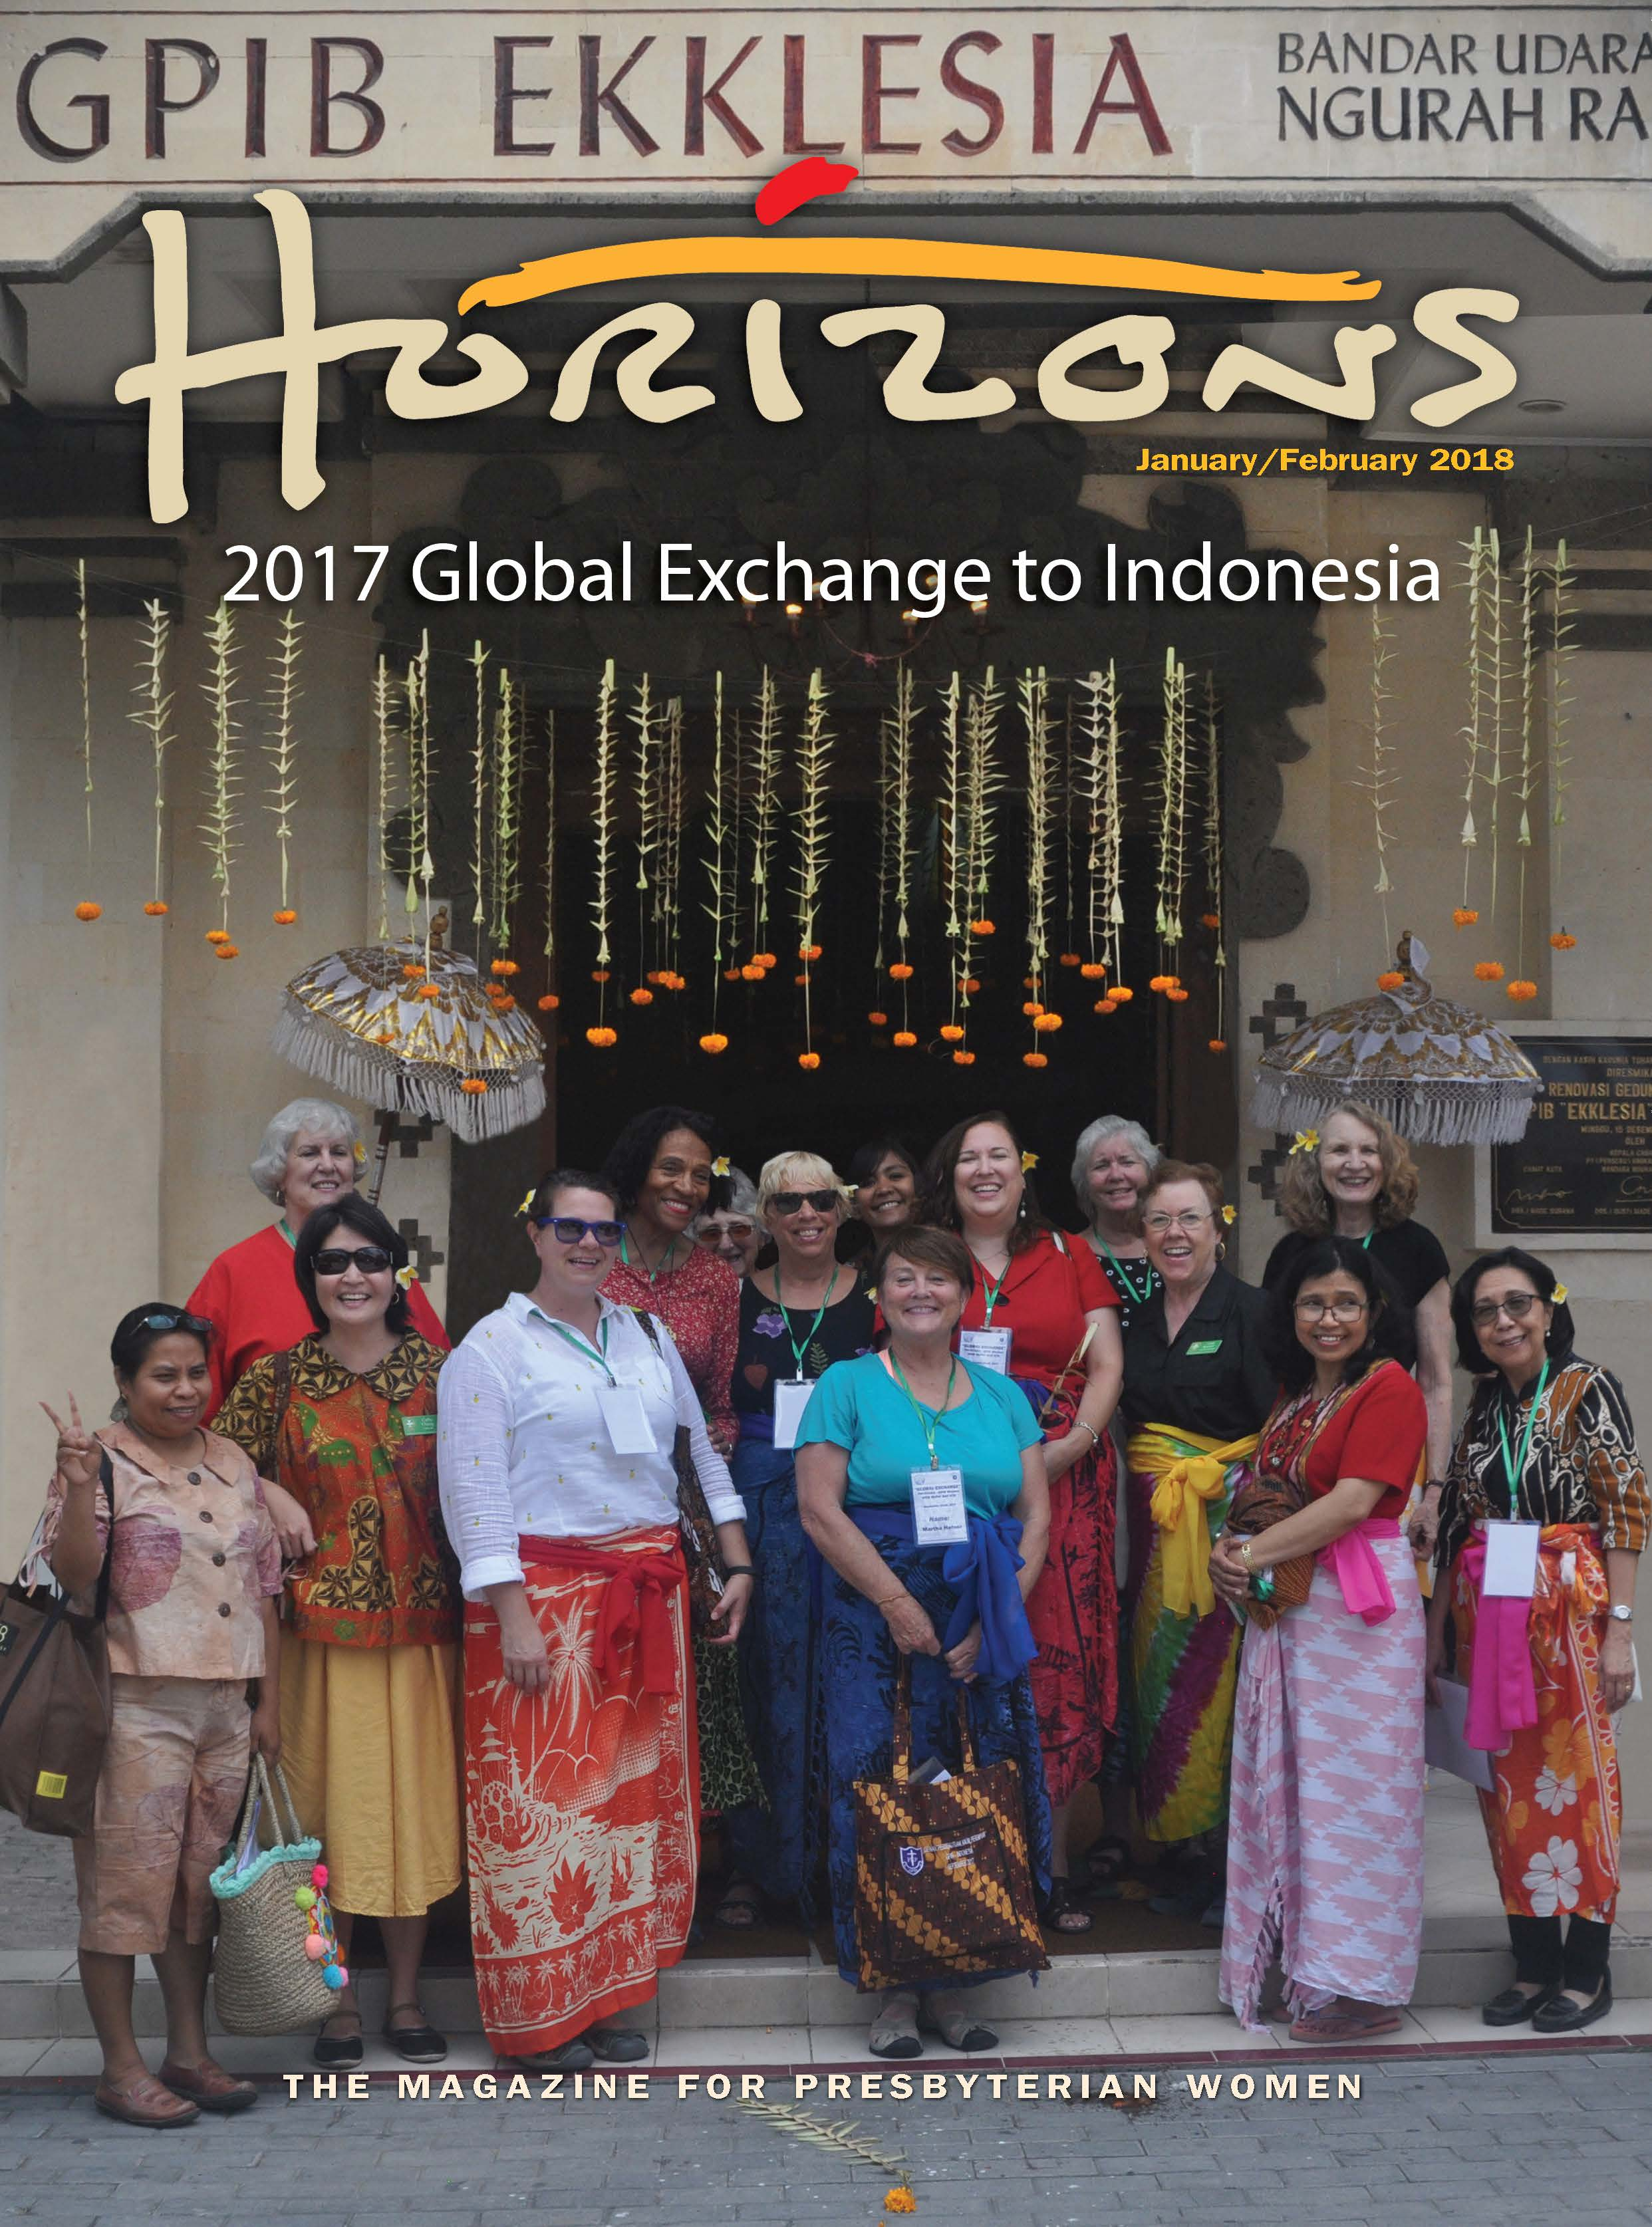 2017 Global Exchange to Indonesia